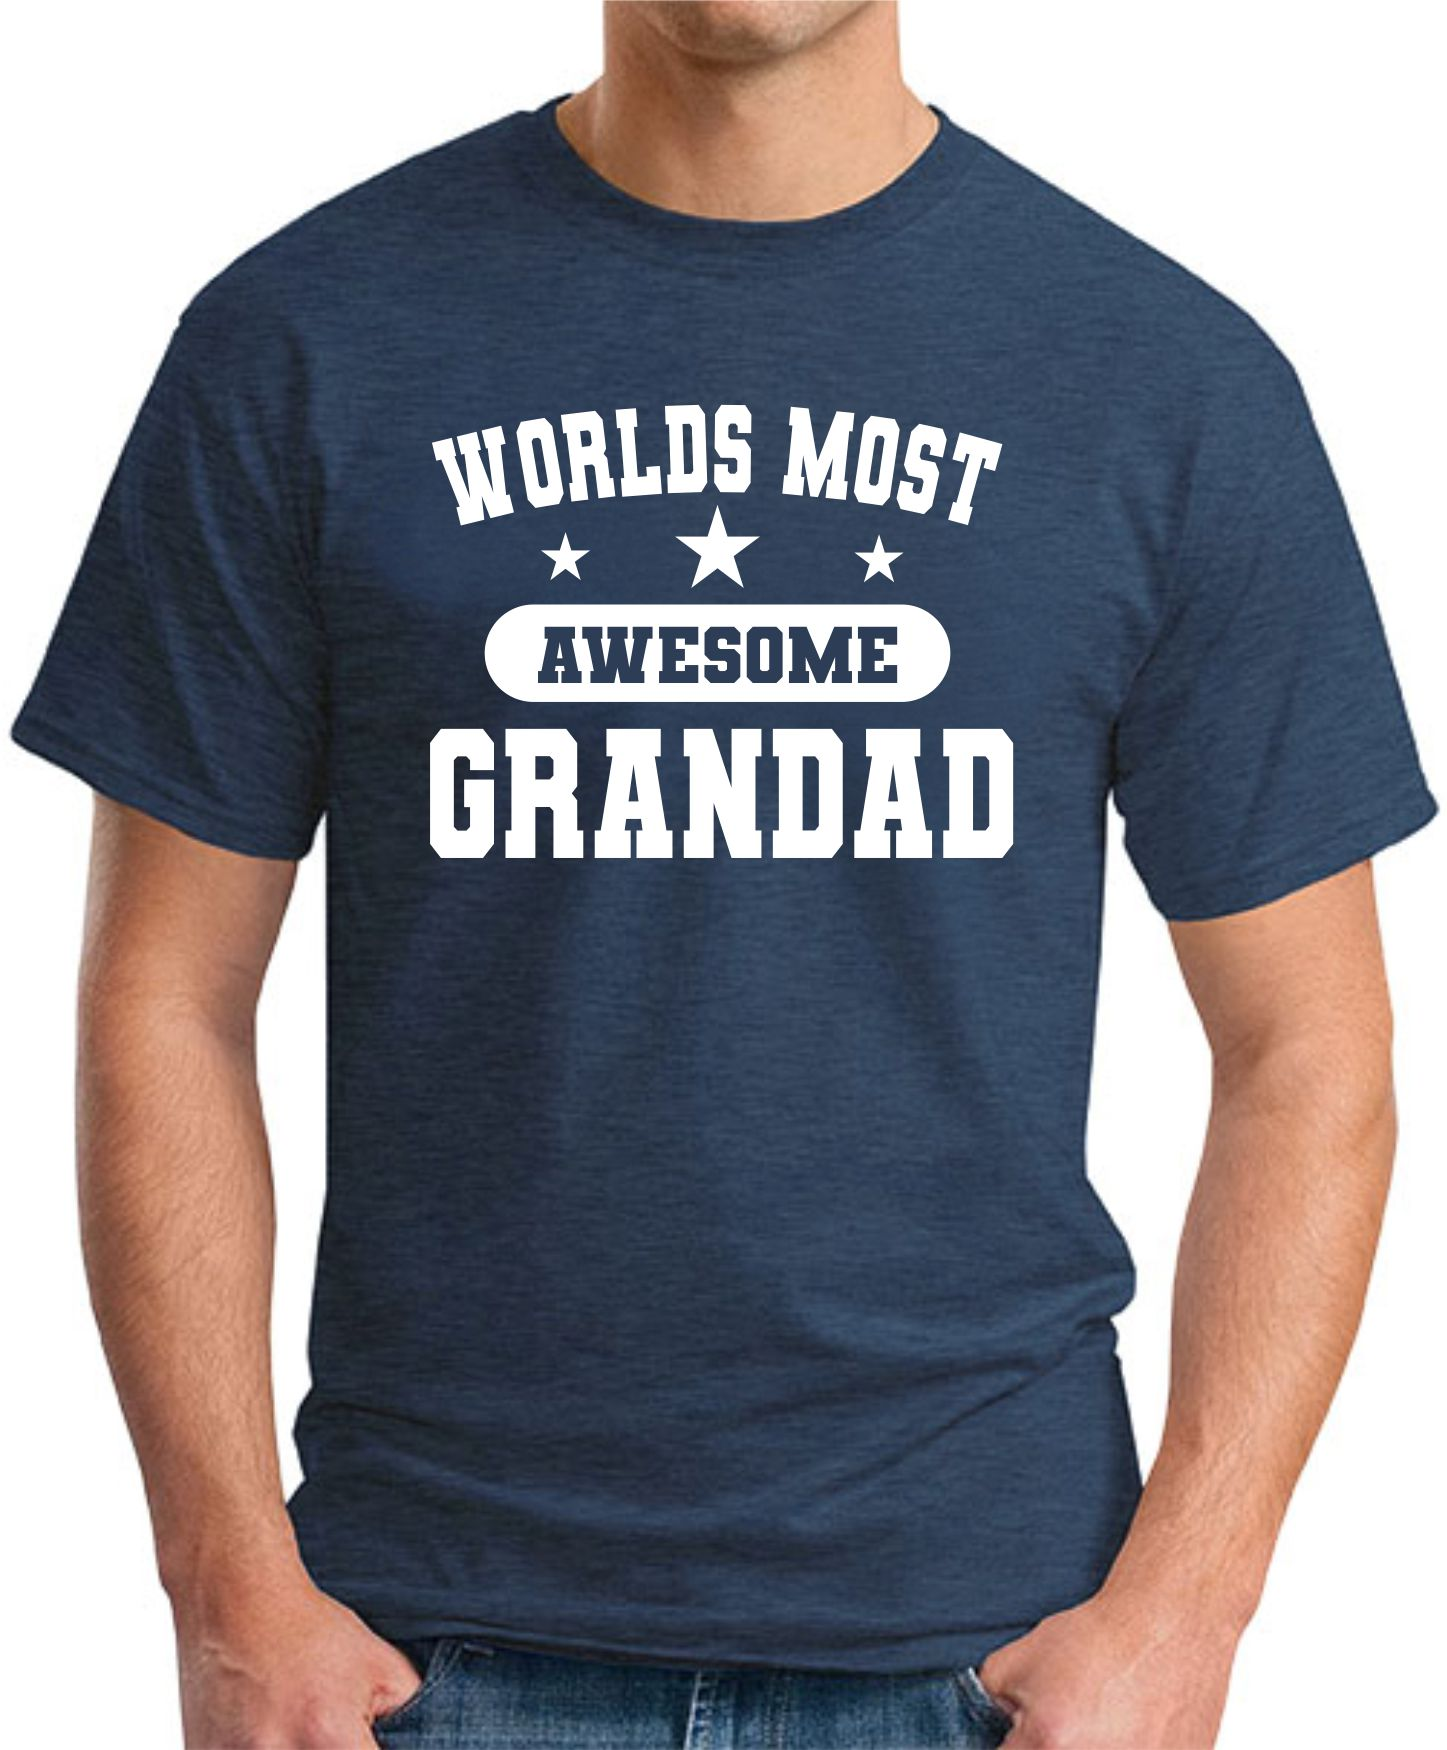 WORLDS MOST AWESOME GRANDAD navy